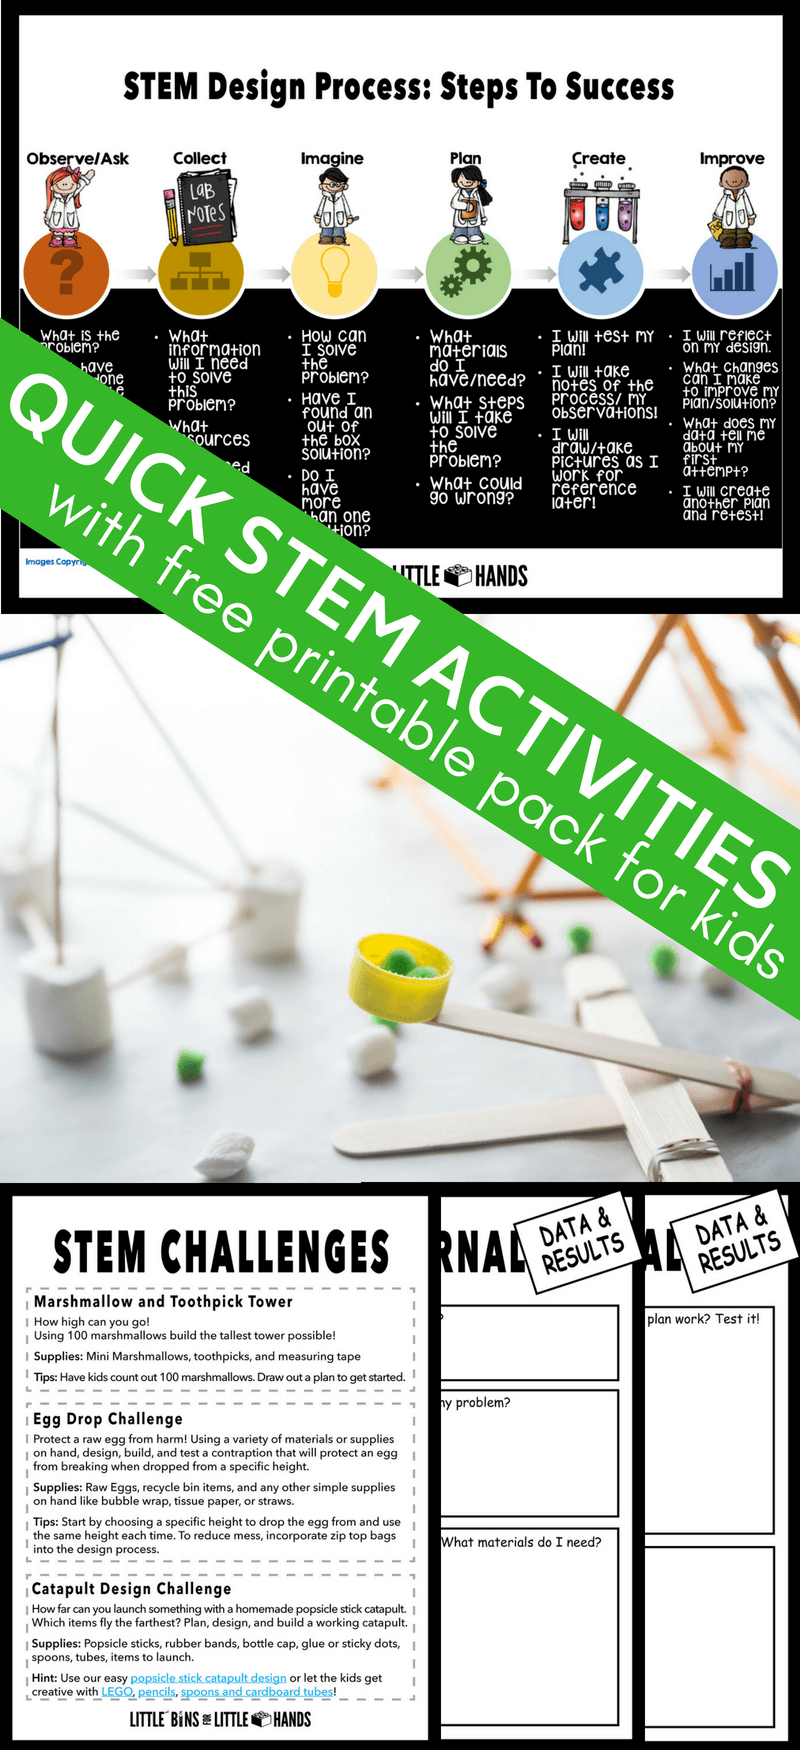 Cheap and quick STEM activities when your time and budget is limited! Kids will love these STEM challenges for use in the home, classroom, or other group setting. Use our free 5 Day STEM Activities pack challenge and get started with cool STEM anytime.